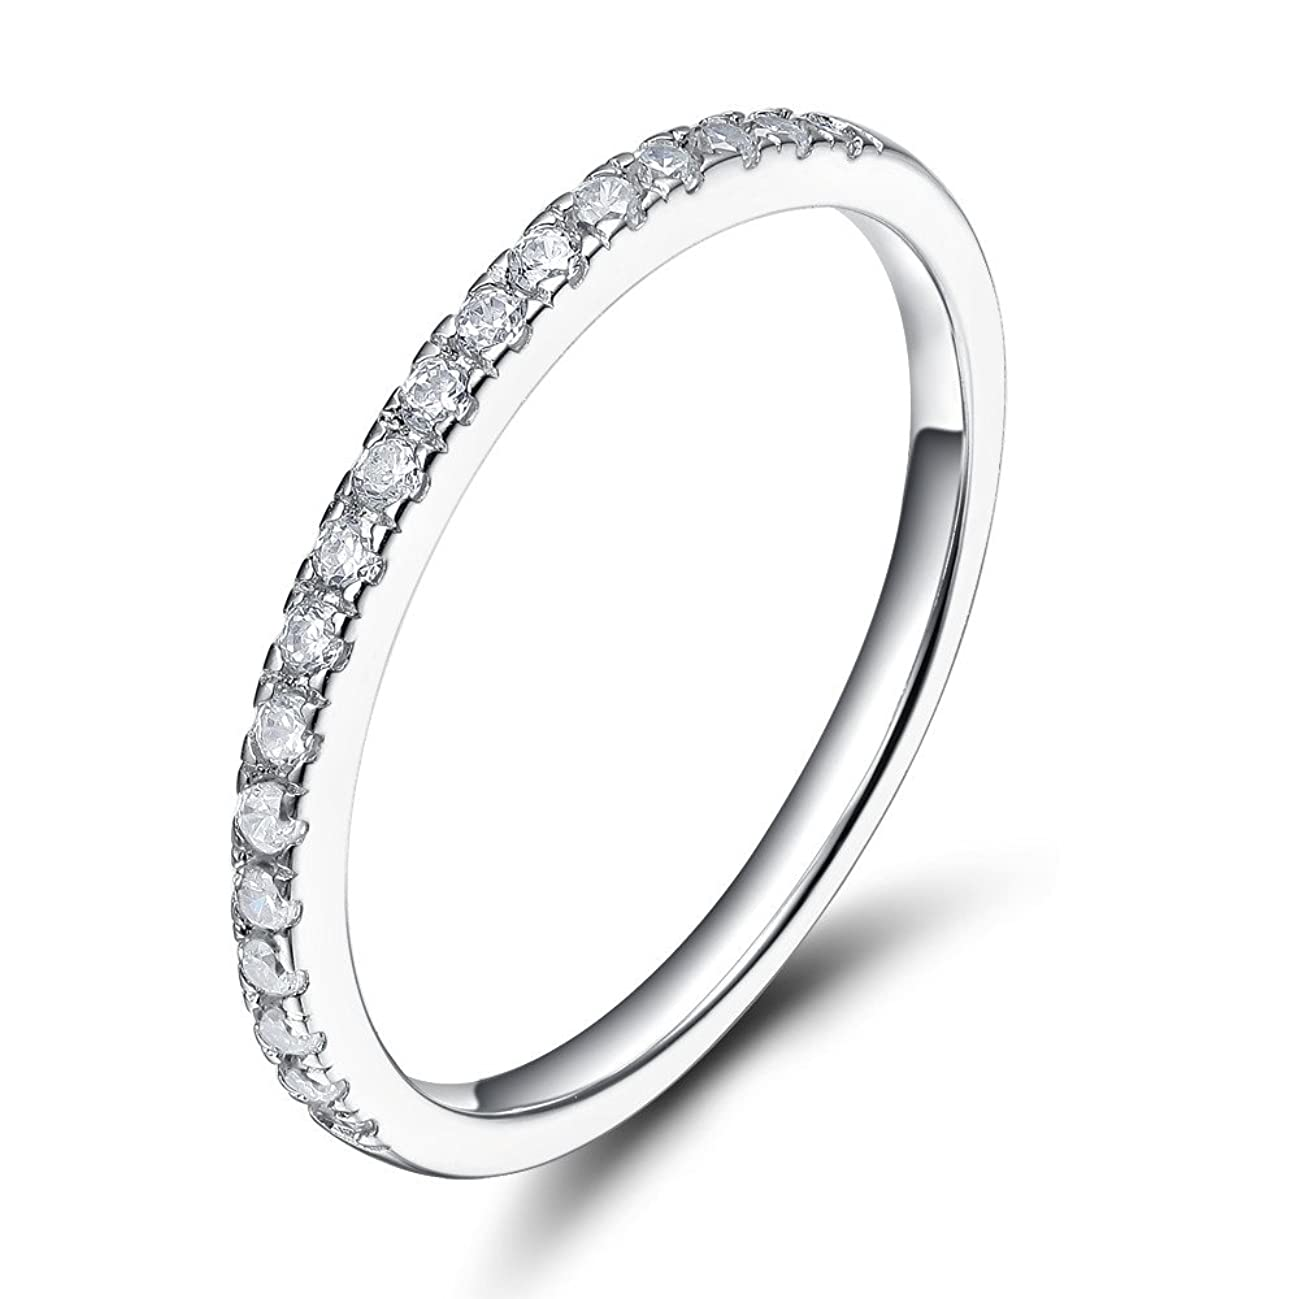 EAMTI 2mm 925 Sterling Silver Wedding Band Cubic Zirconia Half Eternity Stackable Engagement Ring Size 3-12